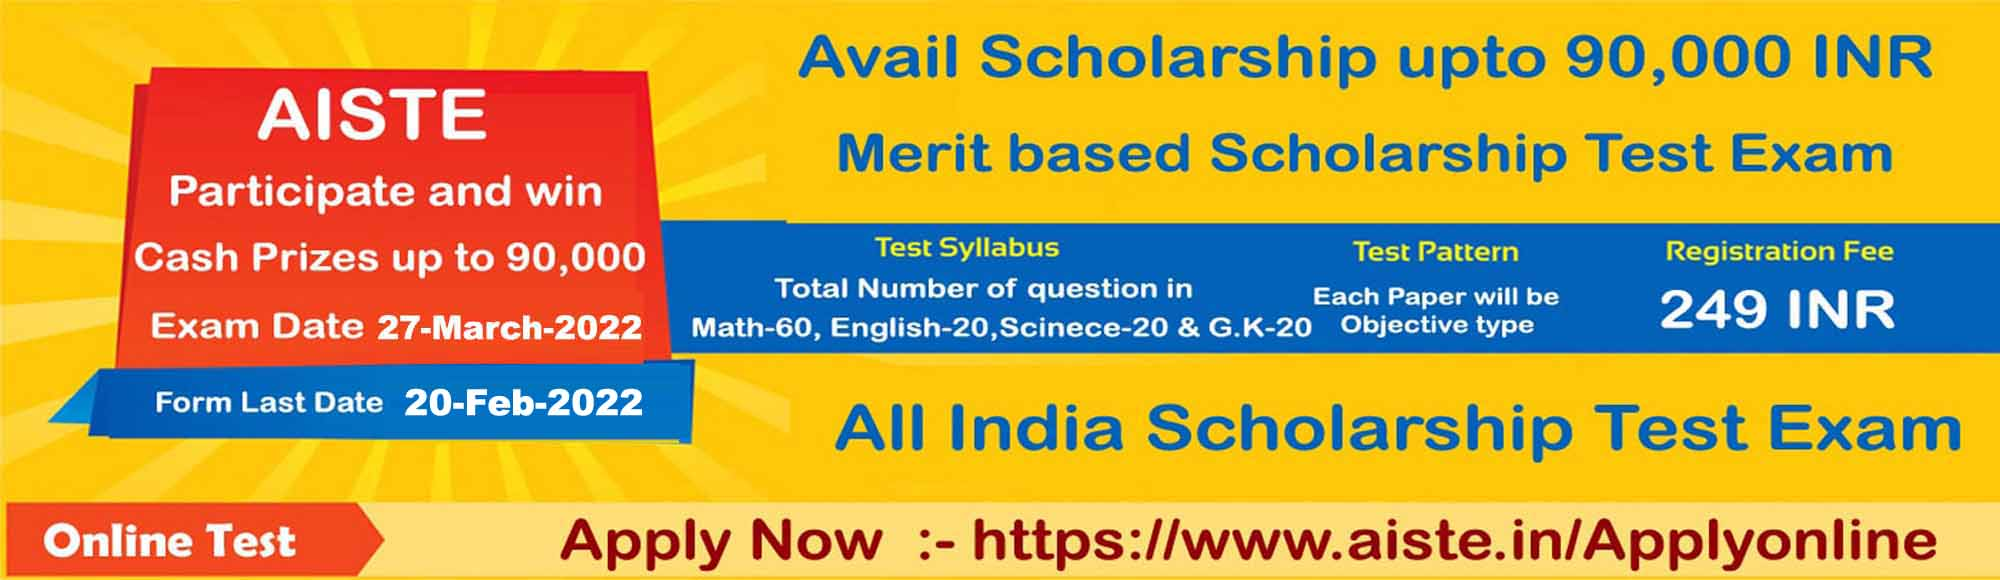 SCHOLARSHIP FORM ONLINE,EDUCATION,AISTE EXAM,ALL BOARD